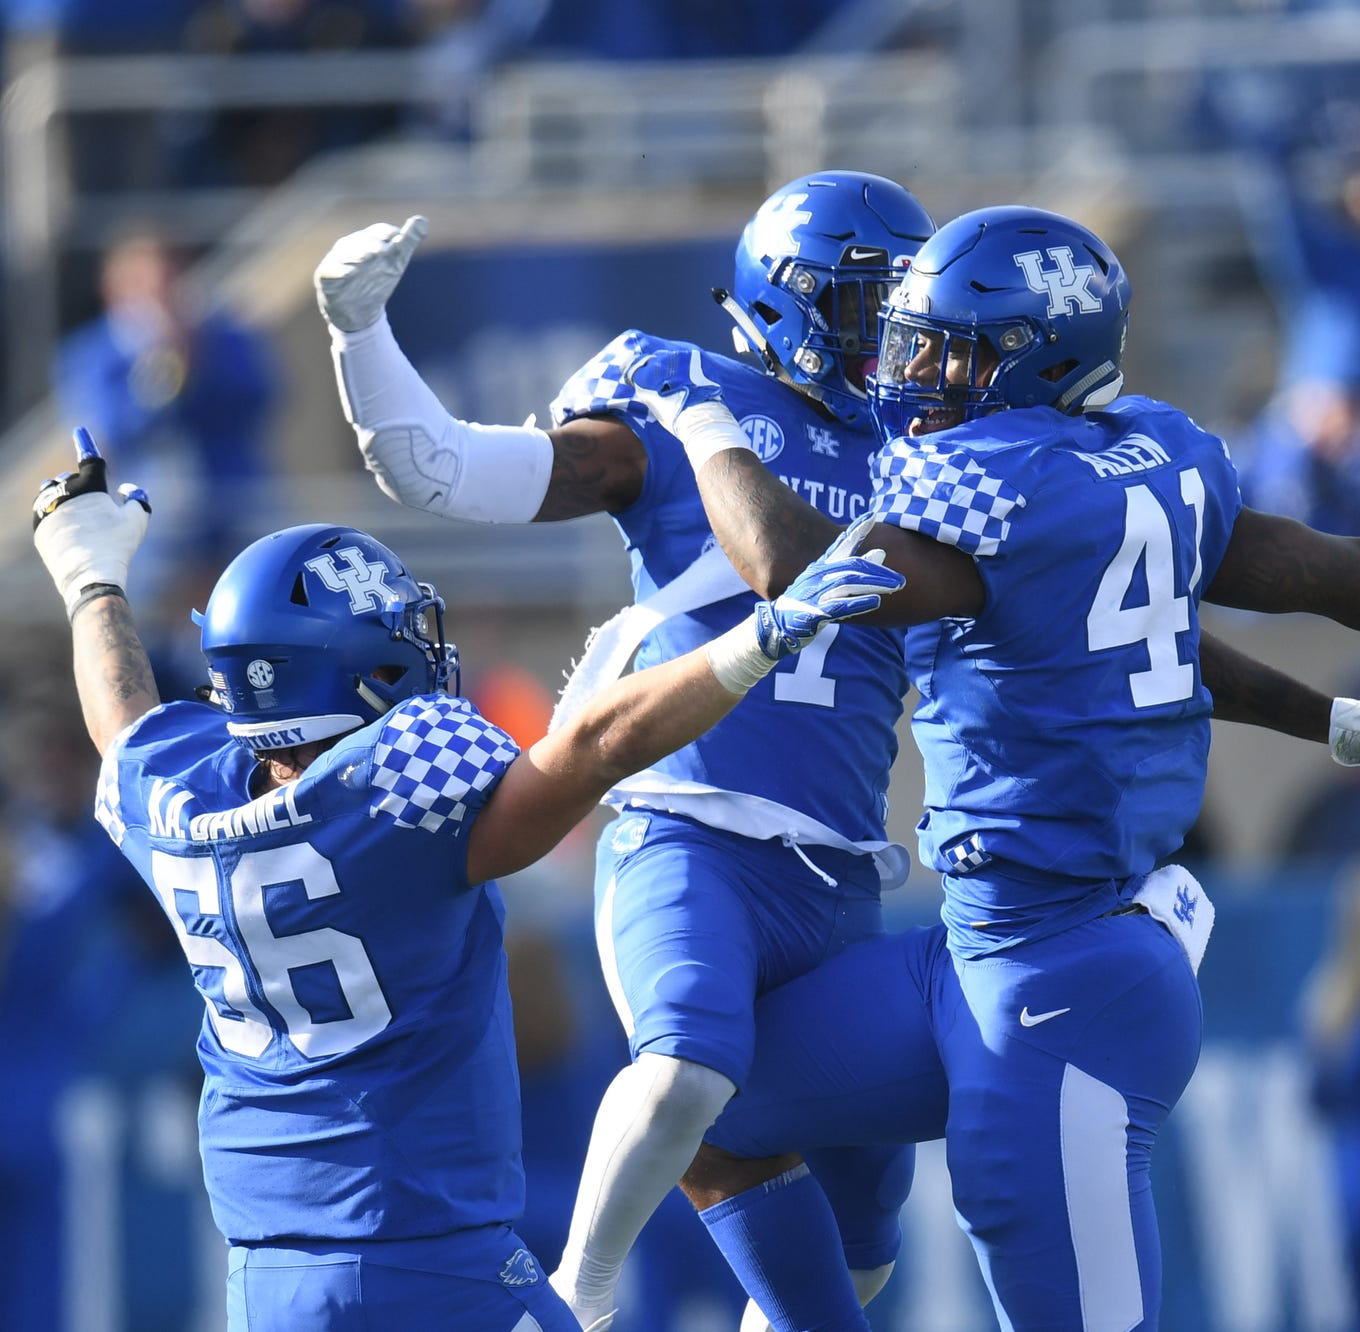 Where will UK football will go bowling after beating Middle Tennessee?